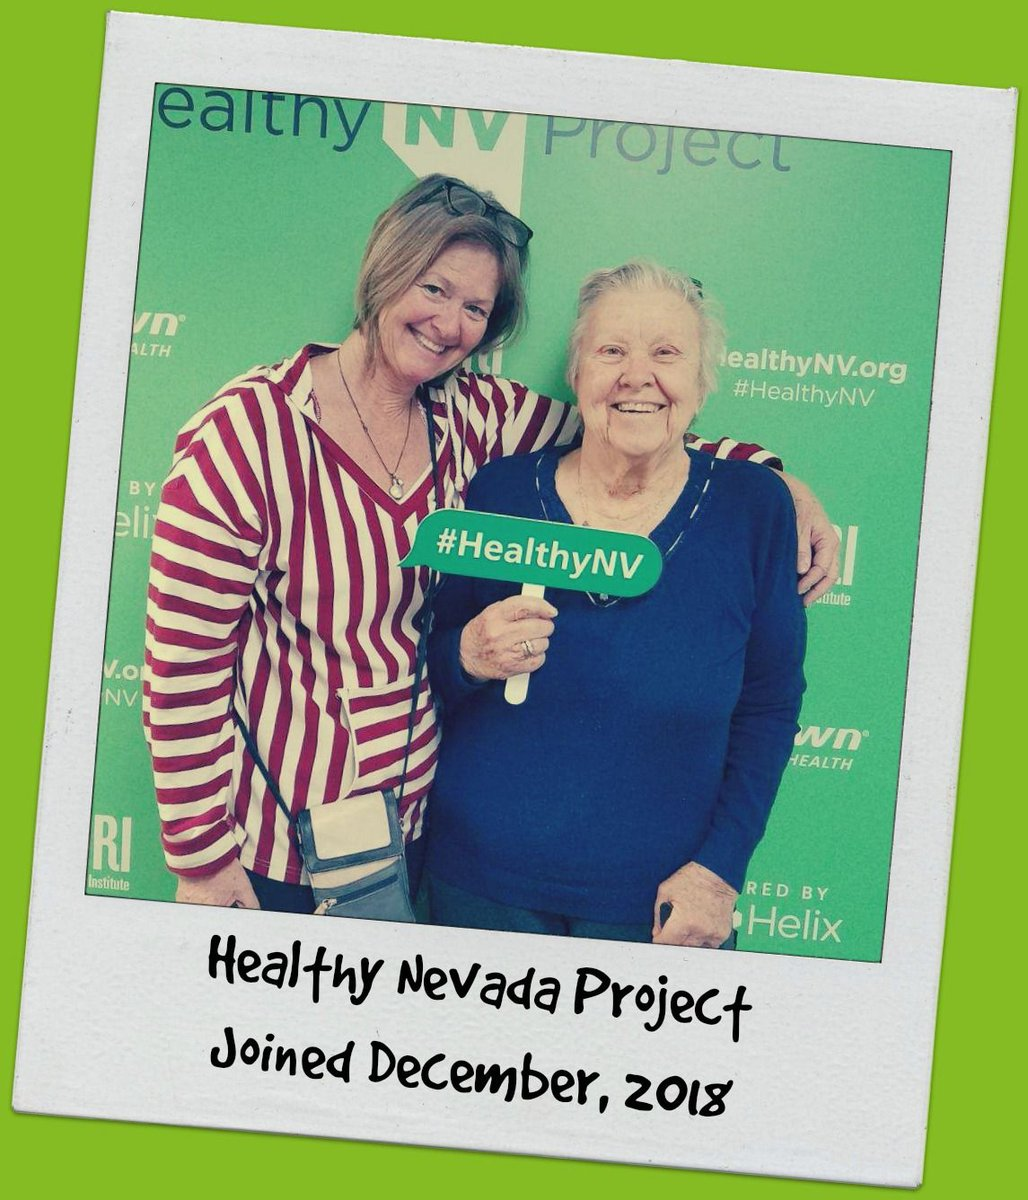 Healthy Nevada Project on Twitter: